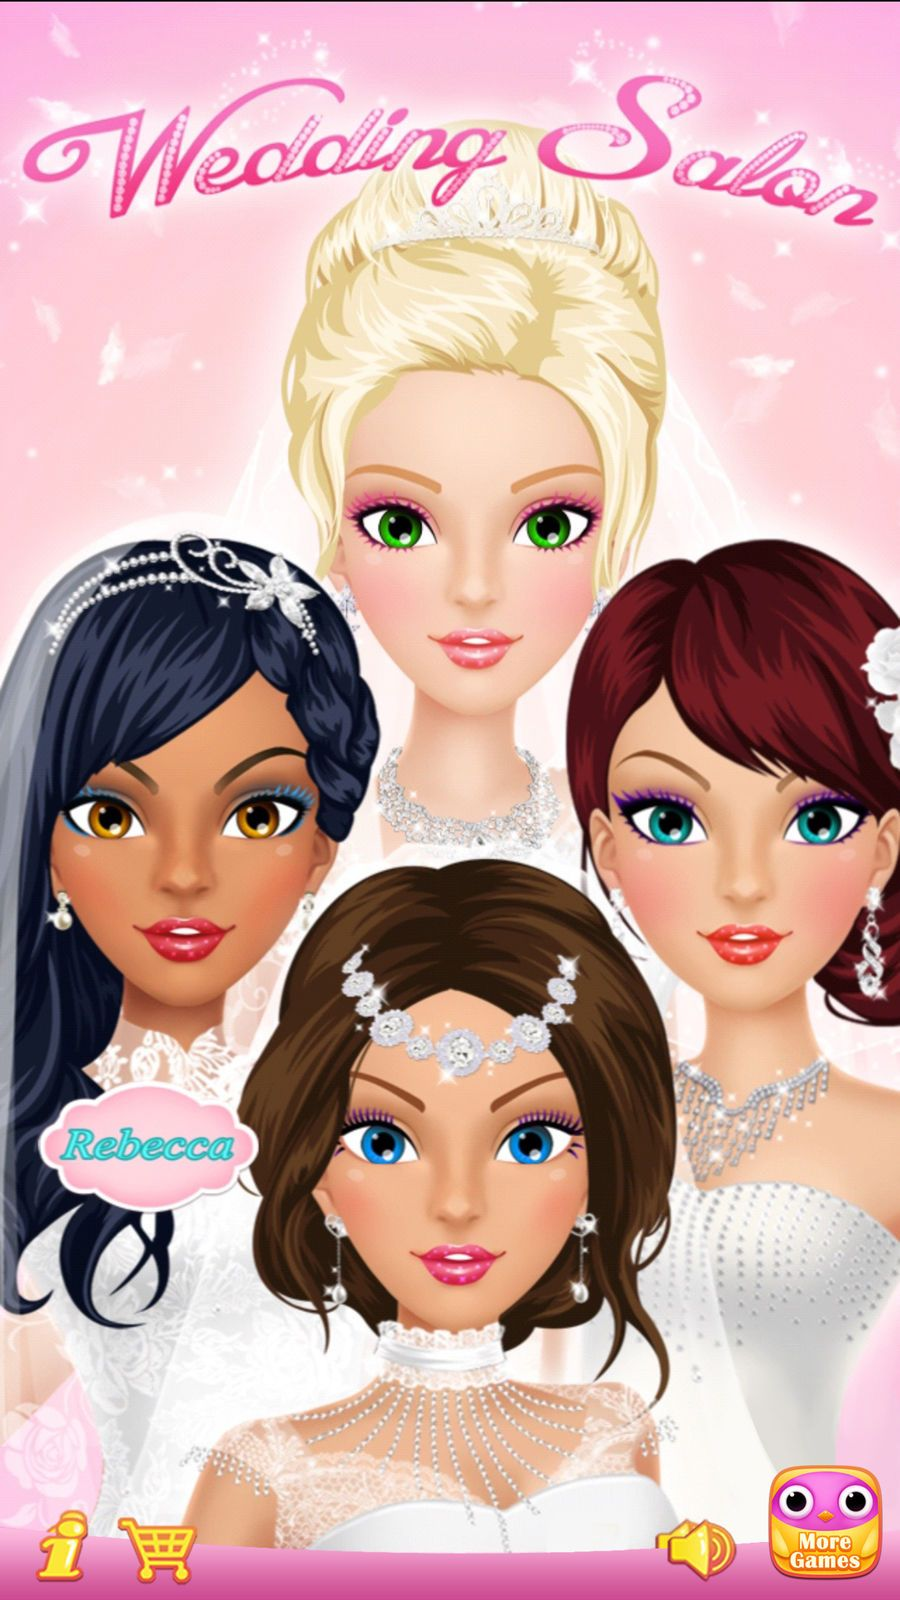 Wedding Salon Girls Makeup, Dressup and Makeover